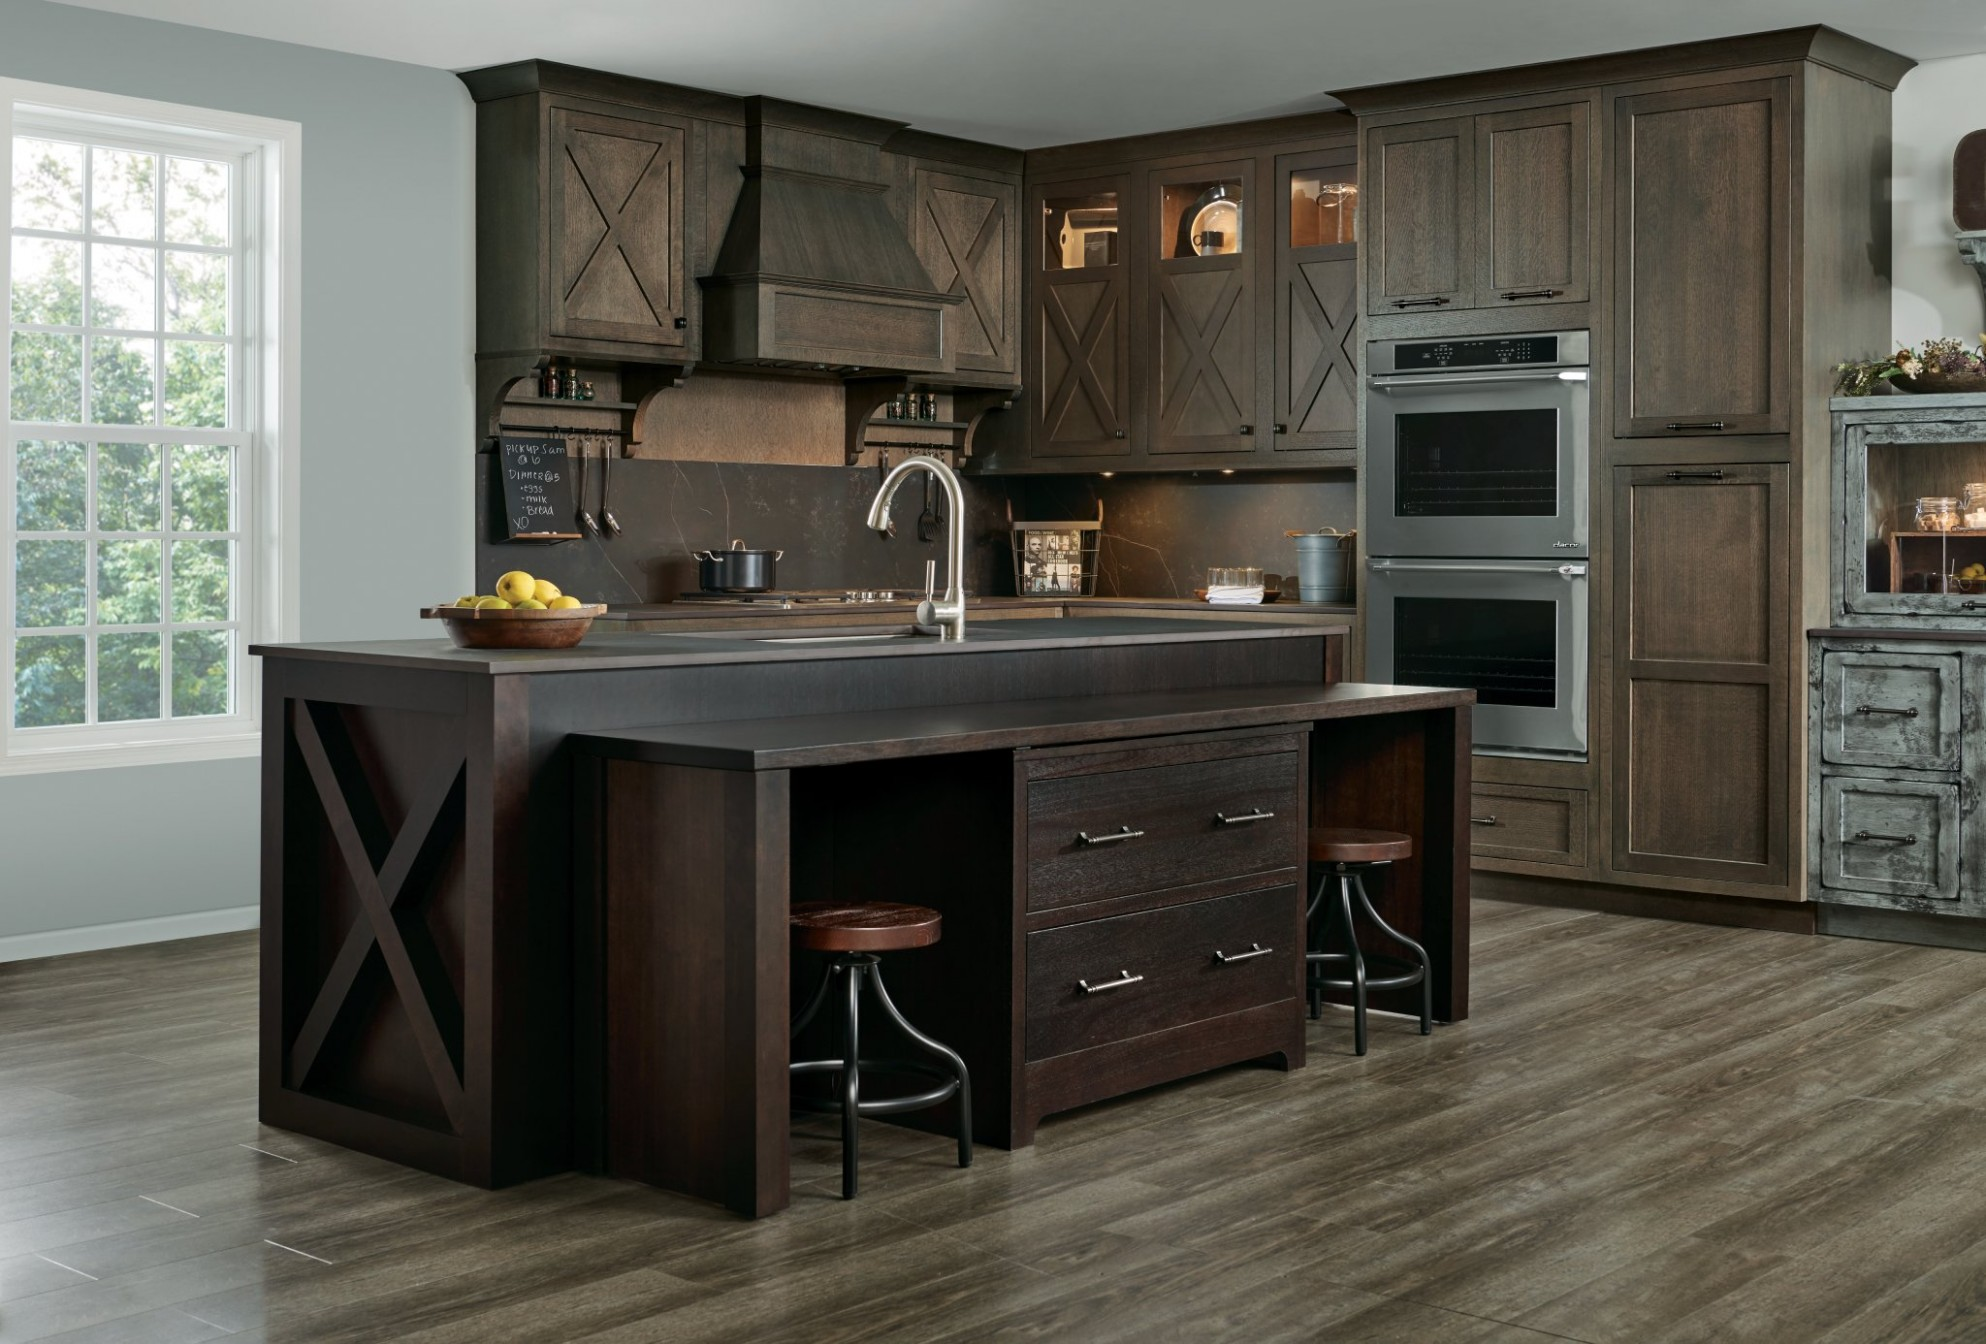 Top 12 Characteristics of High Quality Kitchen Cabinets  Premier  - Kitchen Cabinets Made In Oregon